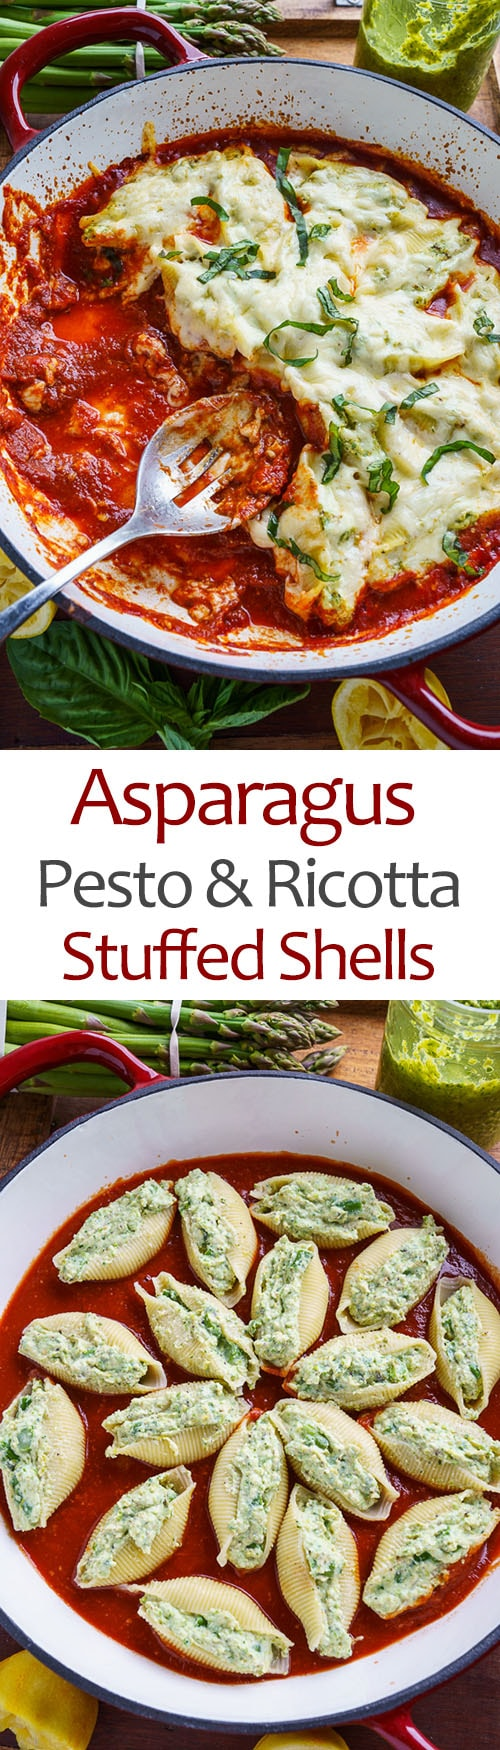 Asparagus Pesto and Ricotta Stuffed Shells